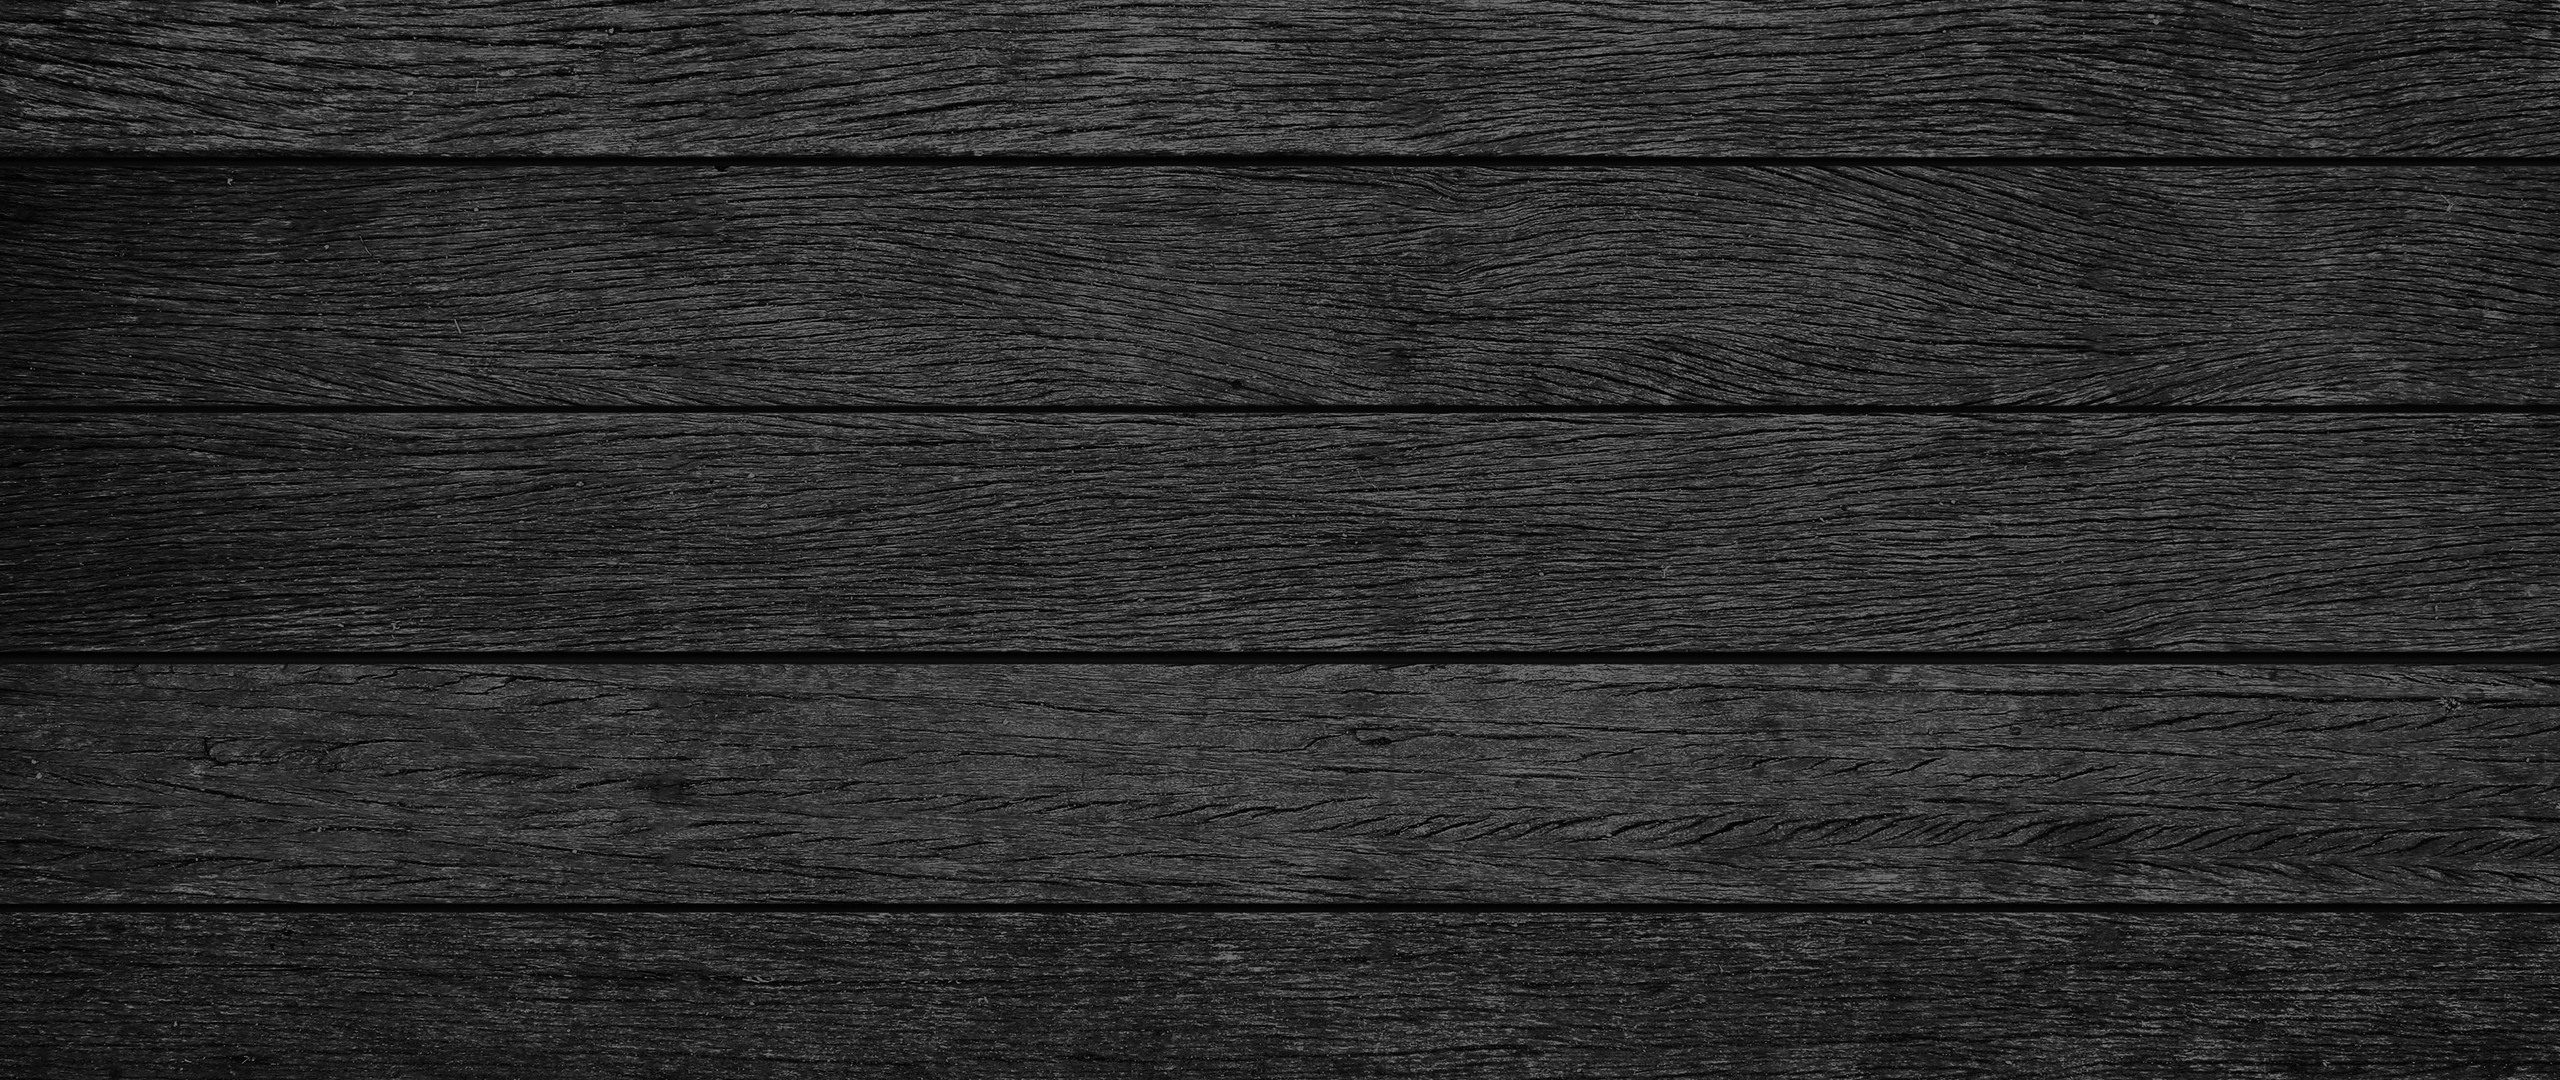 2560x1080 Abstract Dark Wood 2560x1080 Resolution Hd 4k Wallpapers